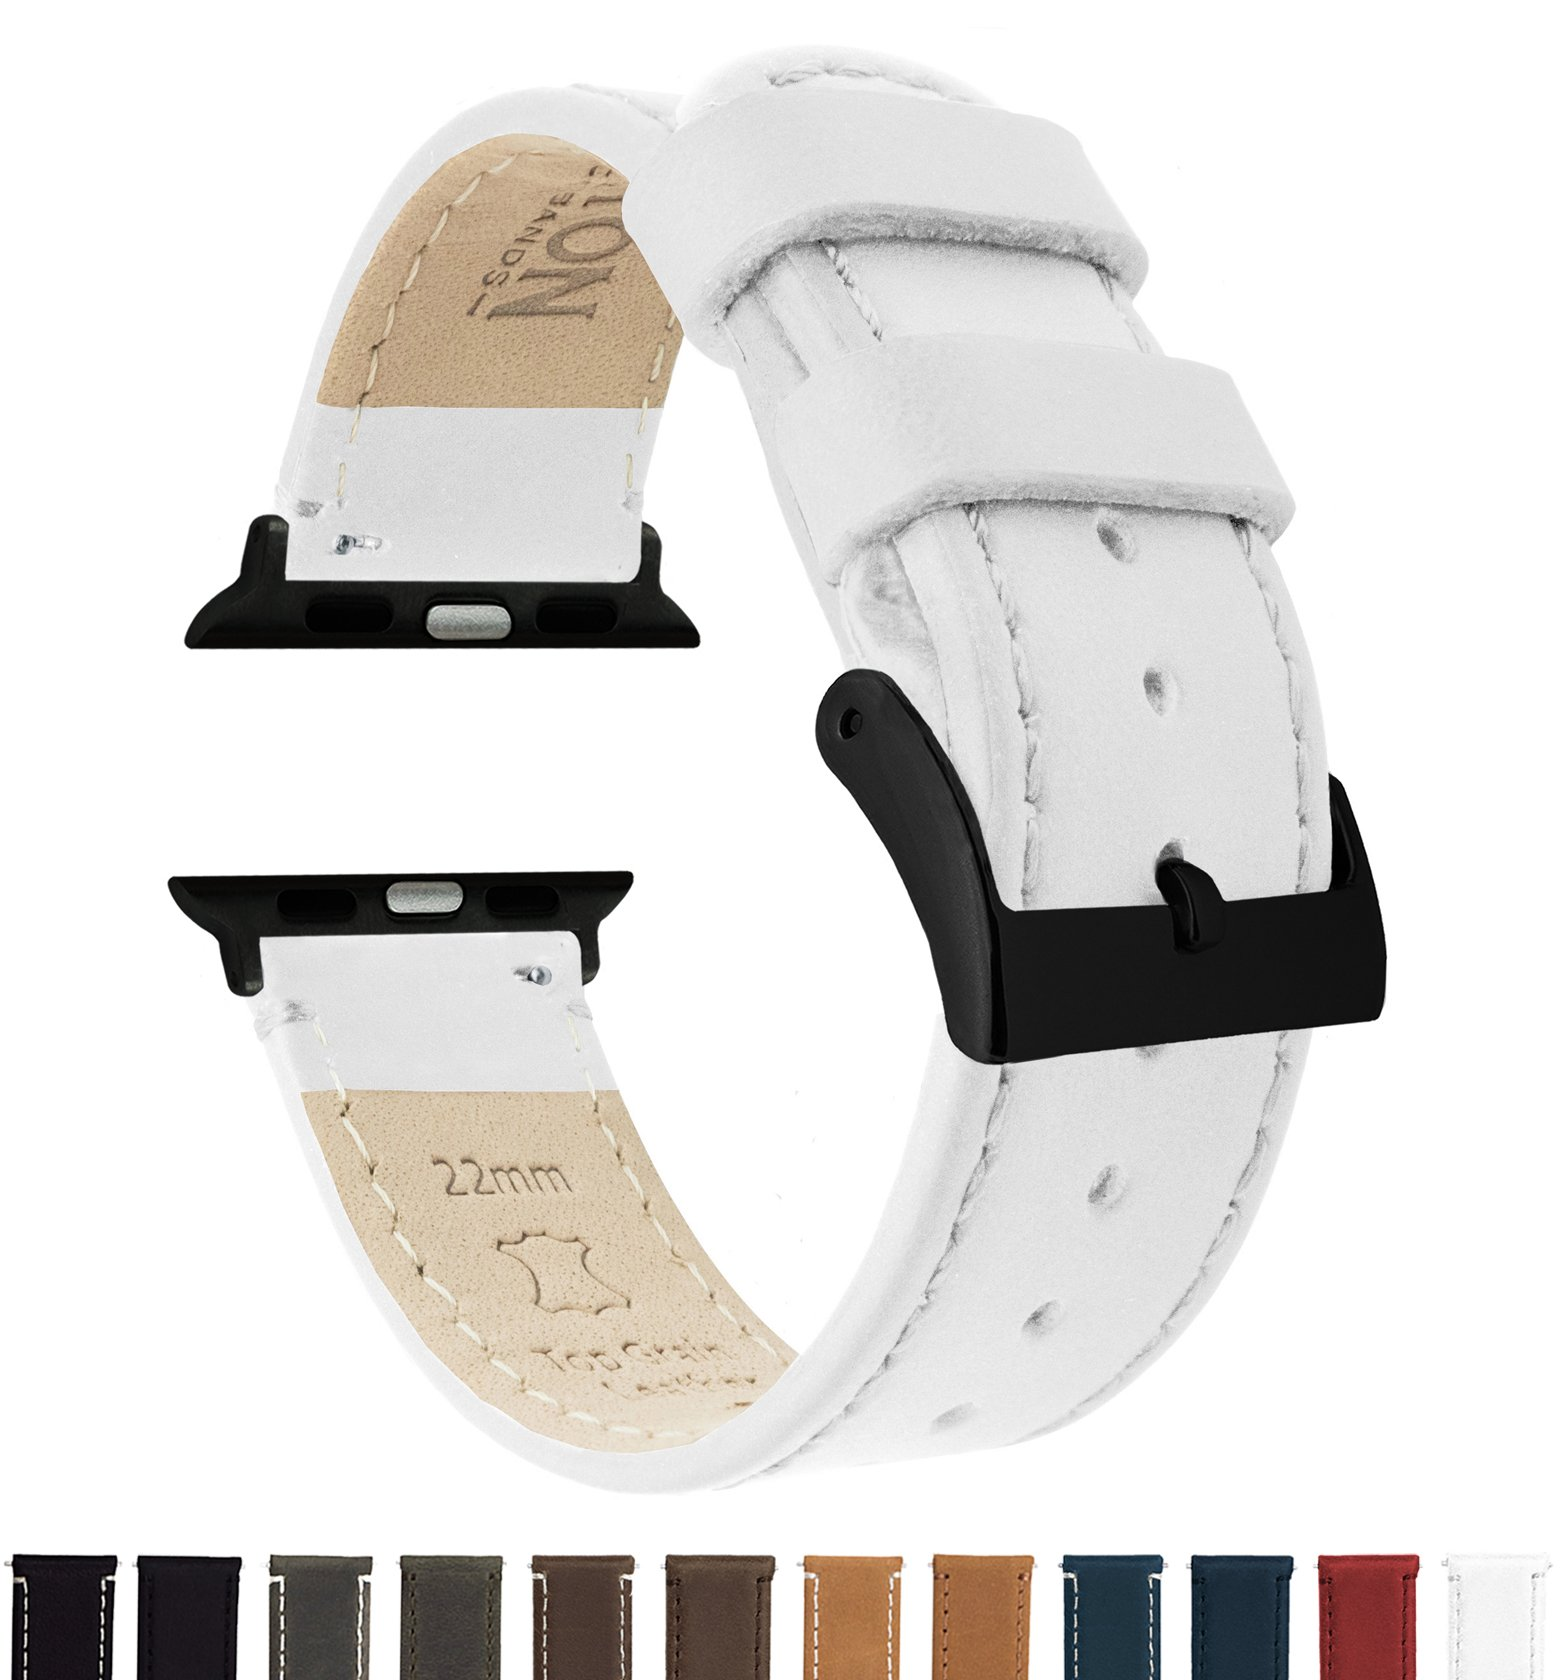 BARTON Leather Watch Bands for Apple Watch - Black Hardware for 42mm & 38mm -White Leather & Stitching